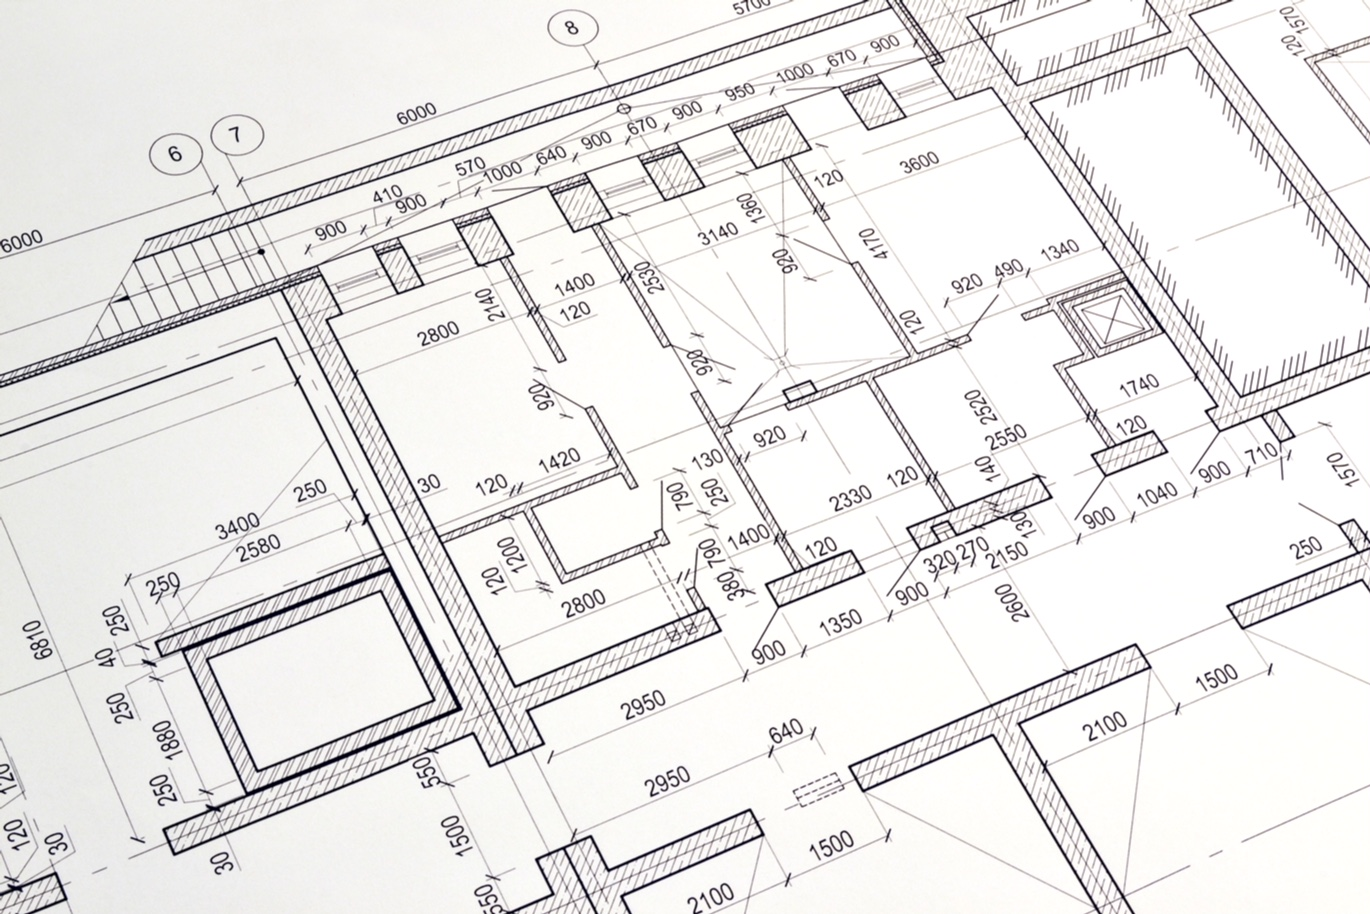 A Measured Building Survey Floor Plan